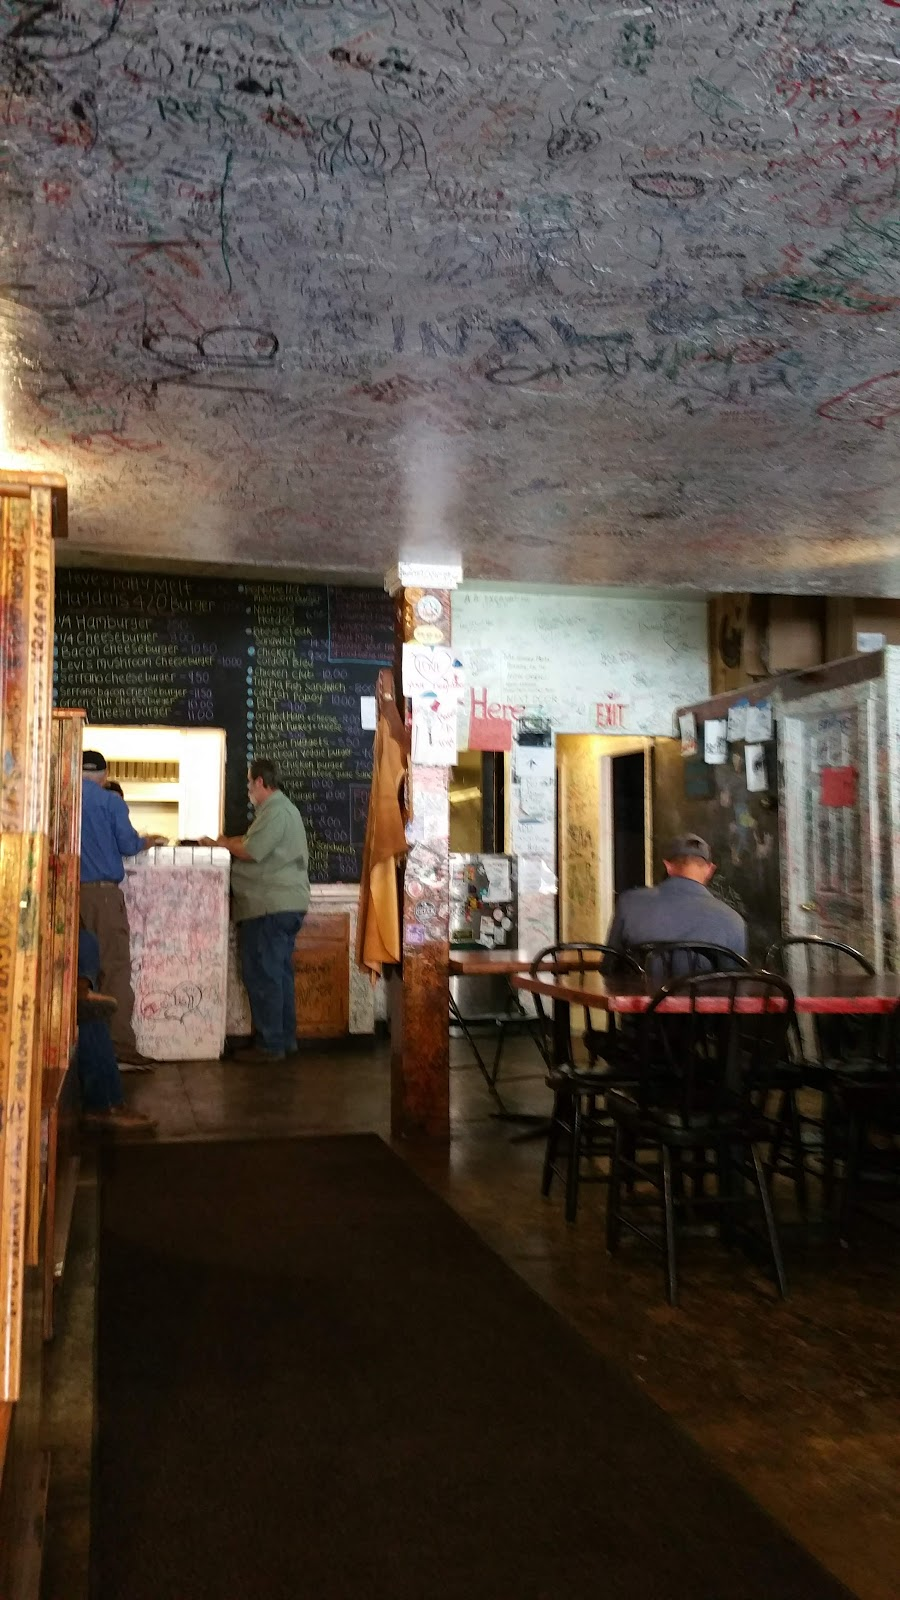 Maggie S Kitchen Ouray Restaurant Review Foodie Review